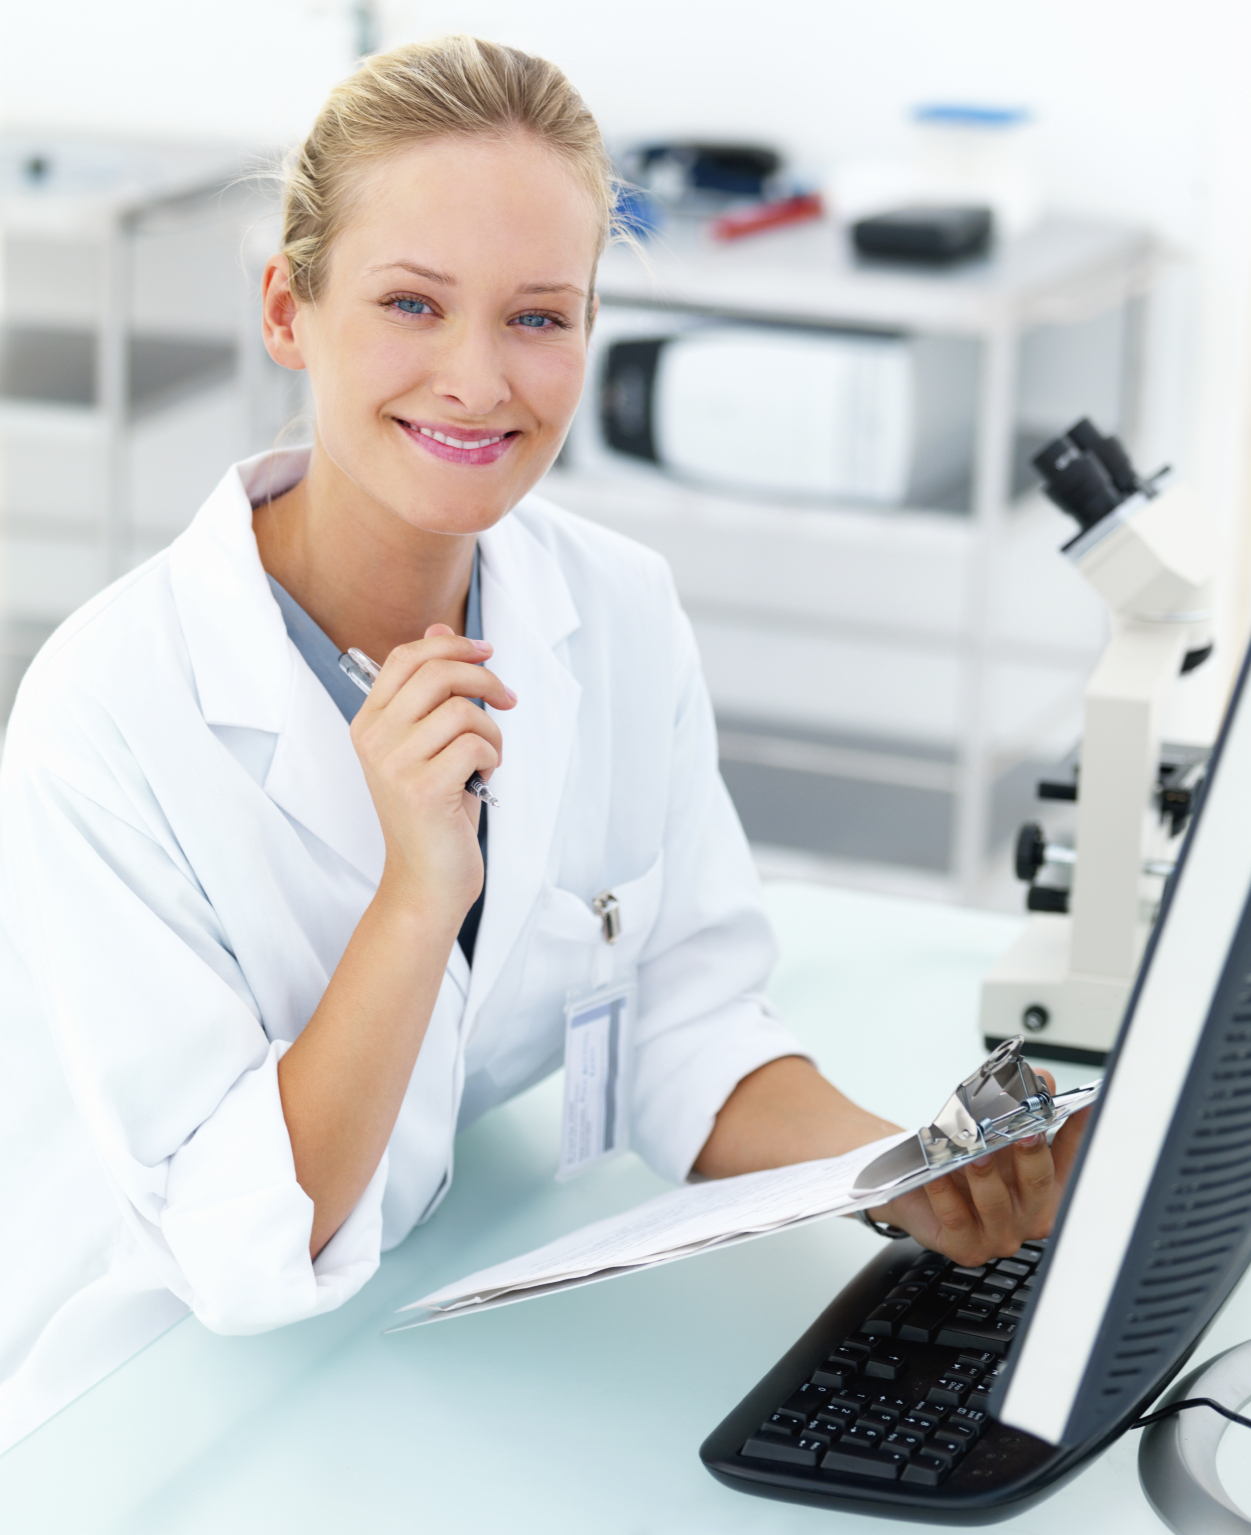 Clinical Laboratory Scientist Application Essay